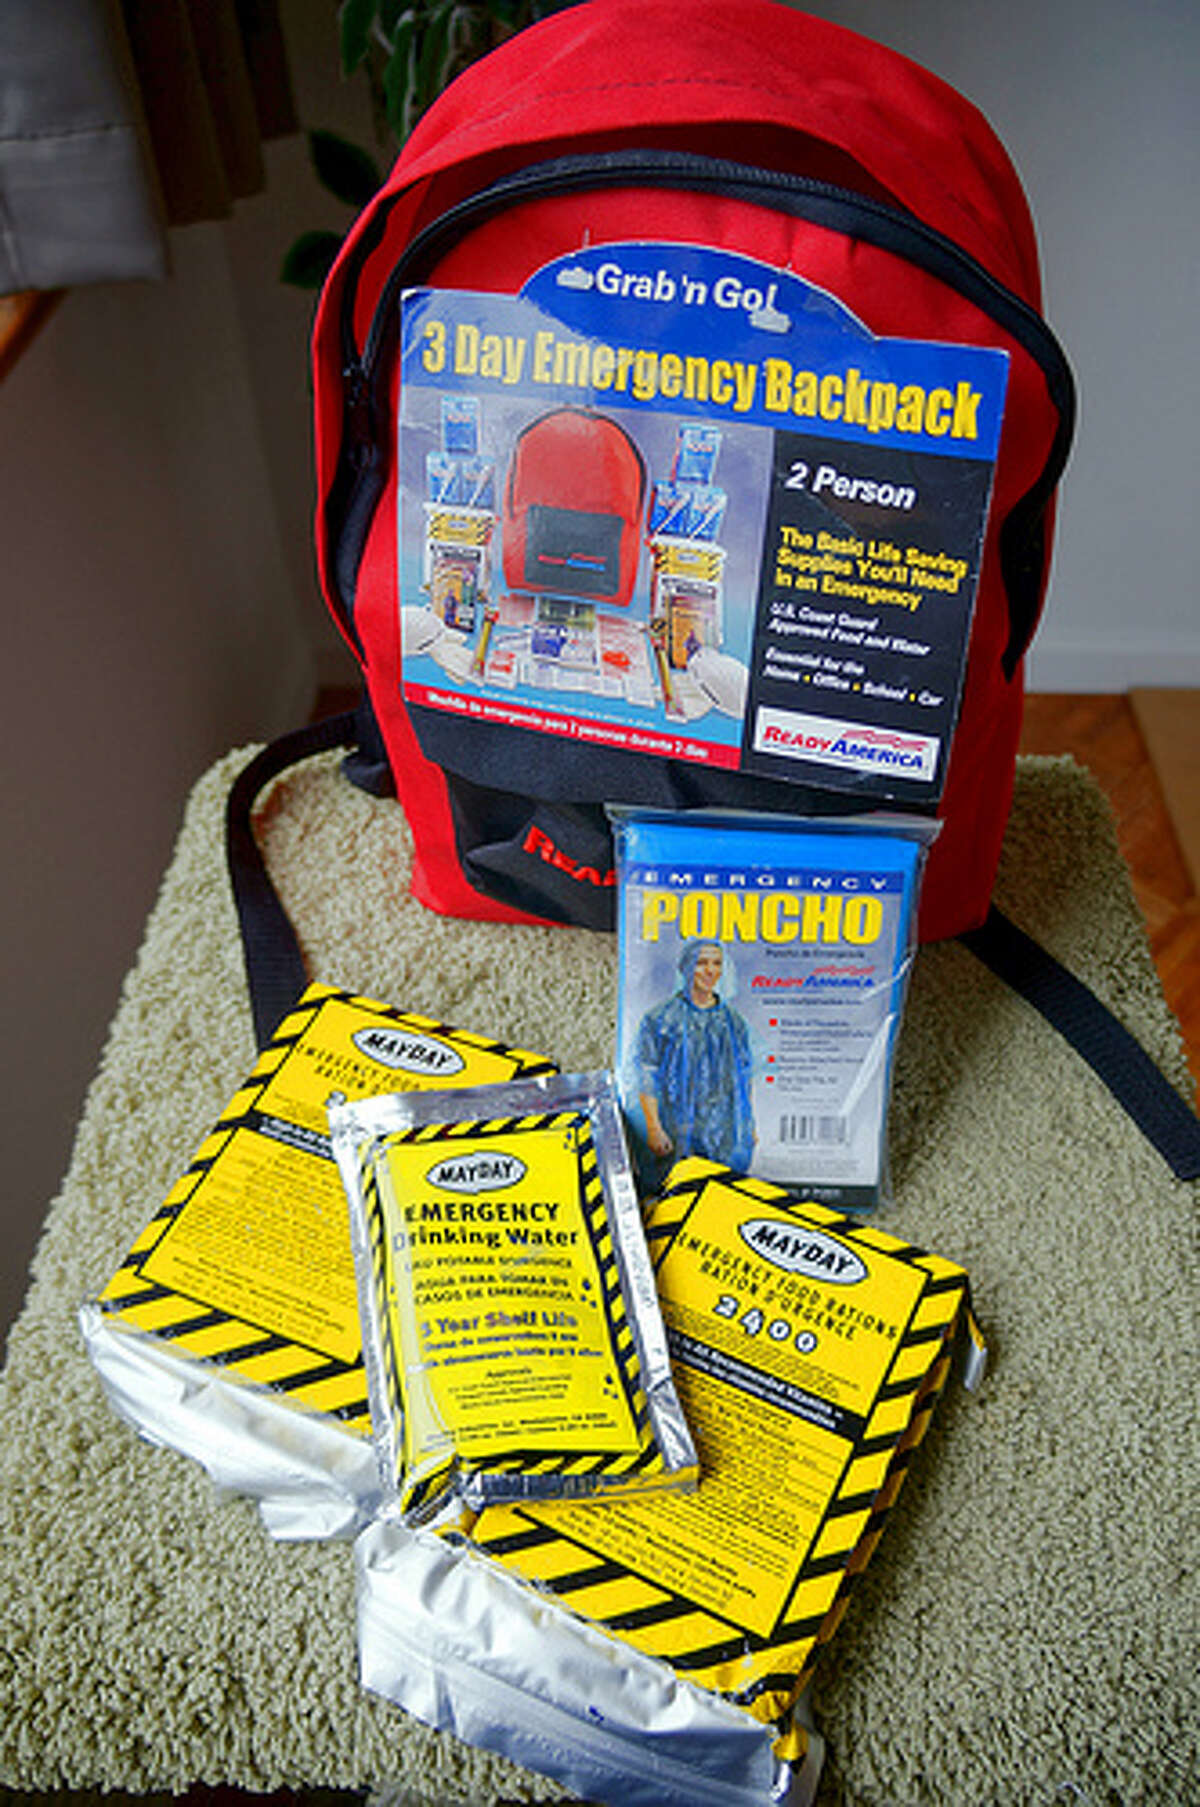 Emergency hurricane kit:Your first step should be to build an emergency kit with some essential supplies and plan for your family. Such supplies should include enough food and water for at least three days, medications, a flashlight, batteries, cash and first aid supplies. Don't forget your pet's needs as well. Photo: augieray, Flickr Source: FEMA